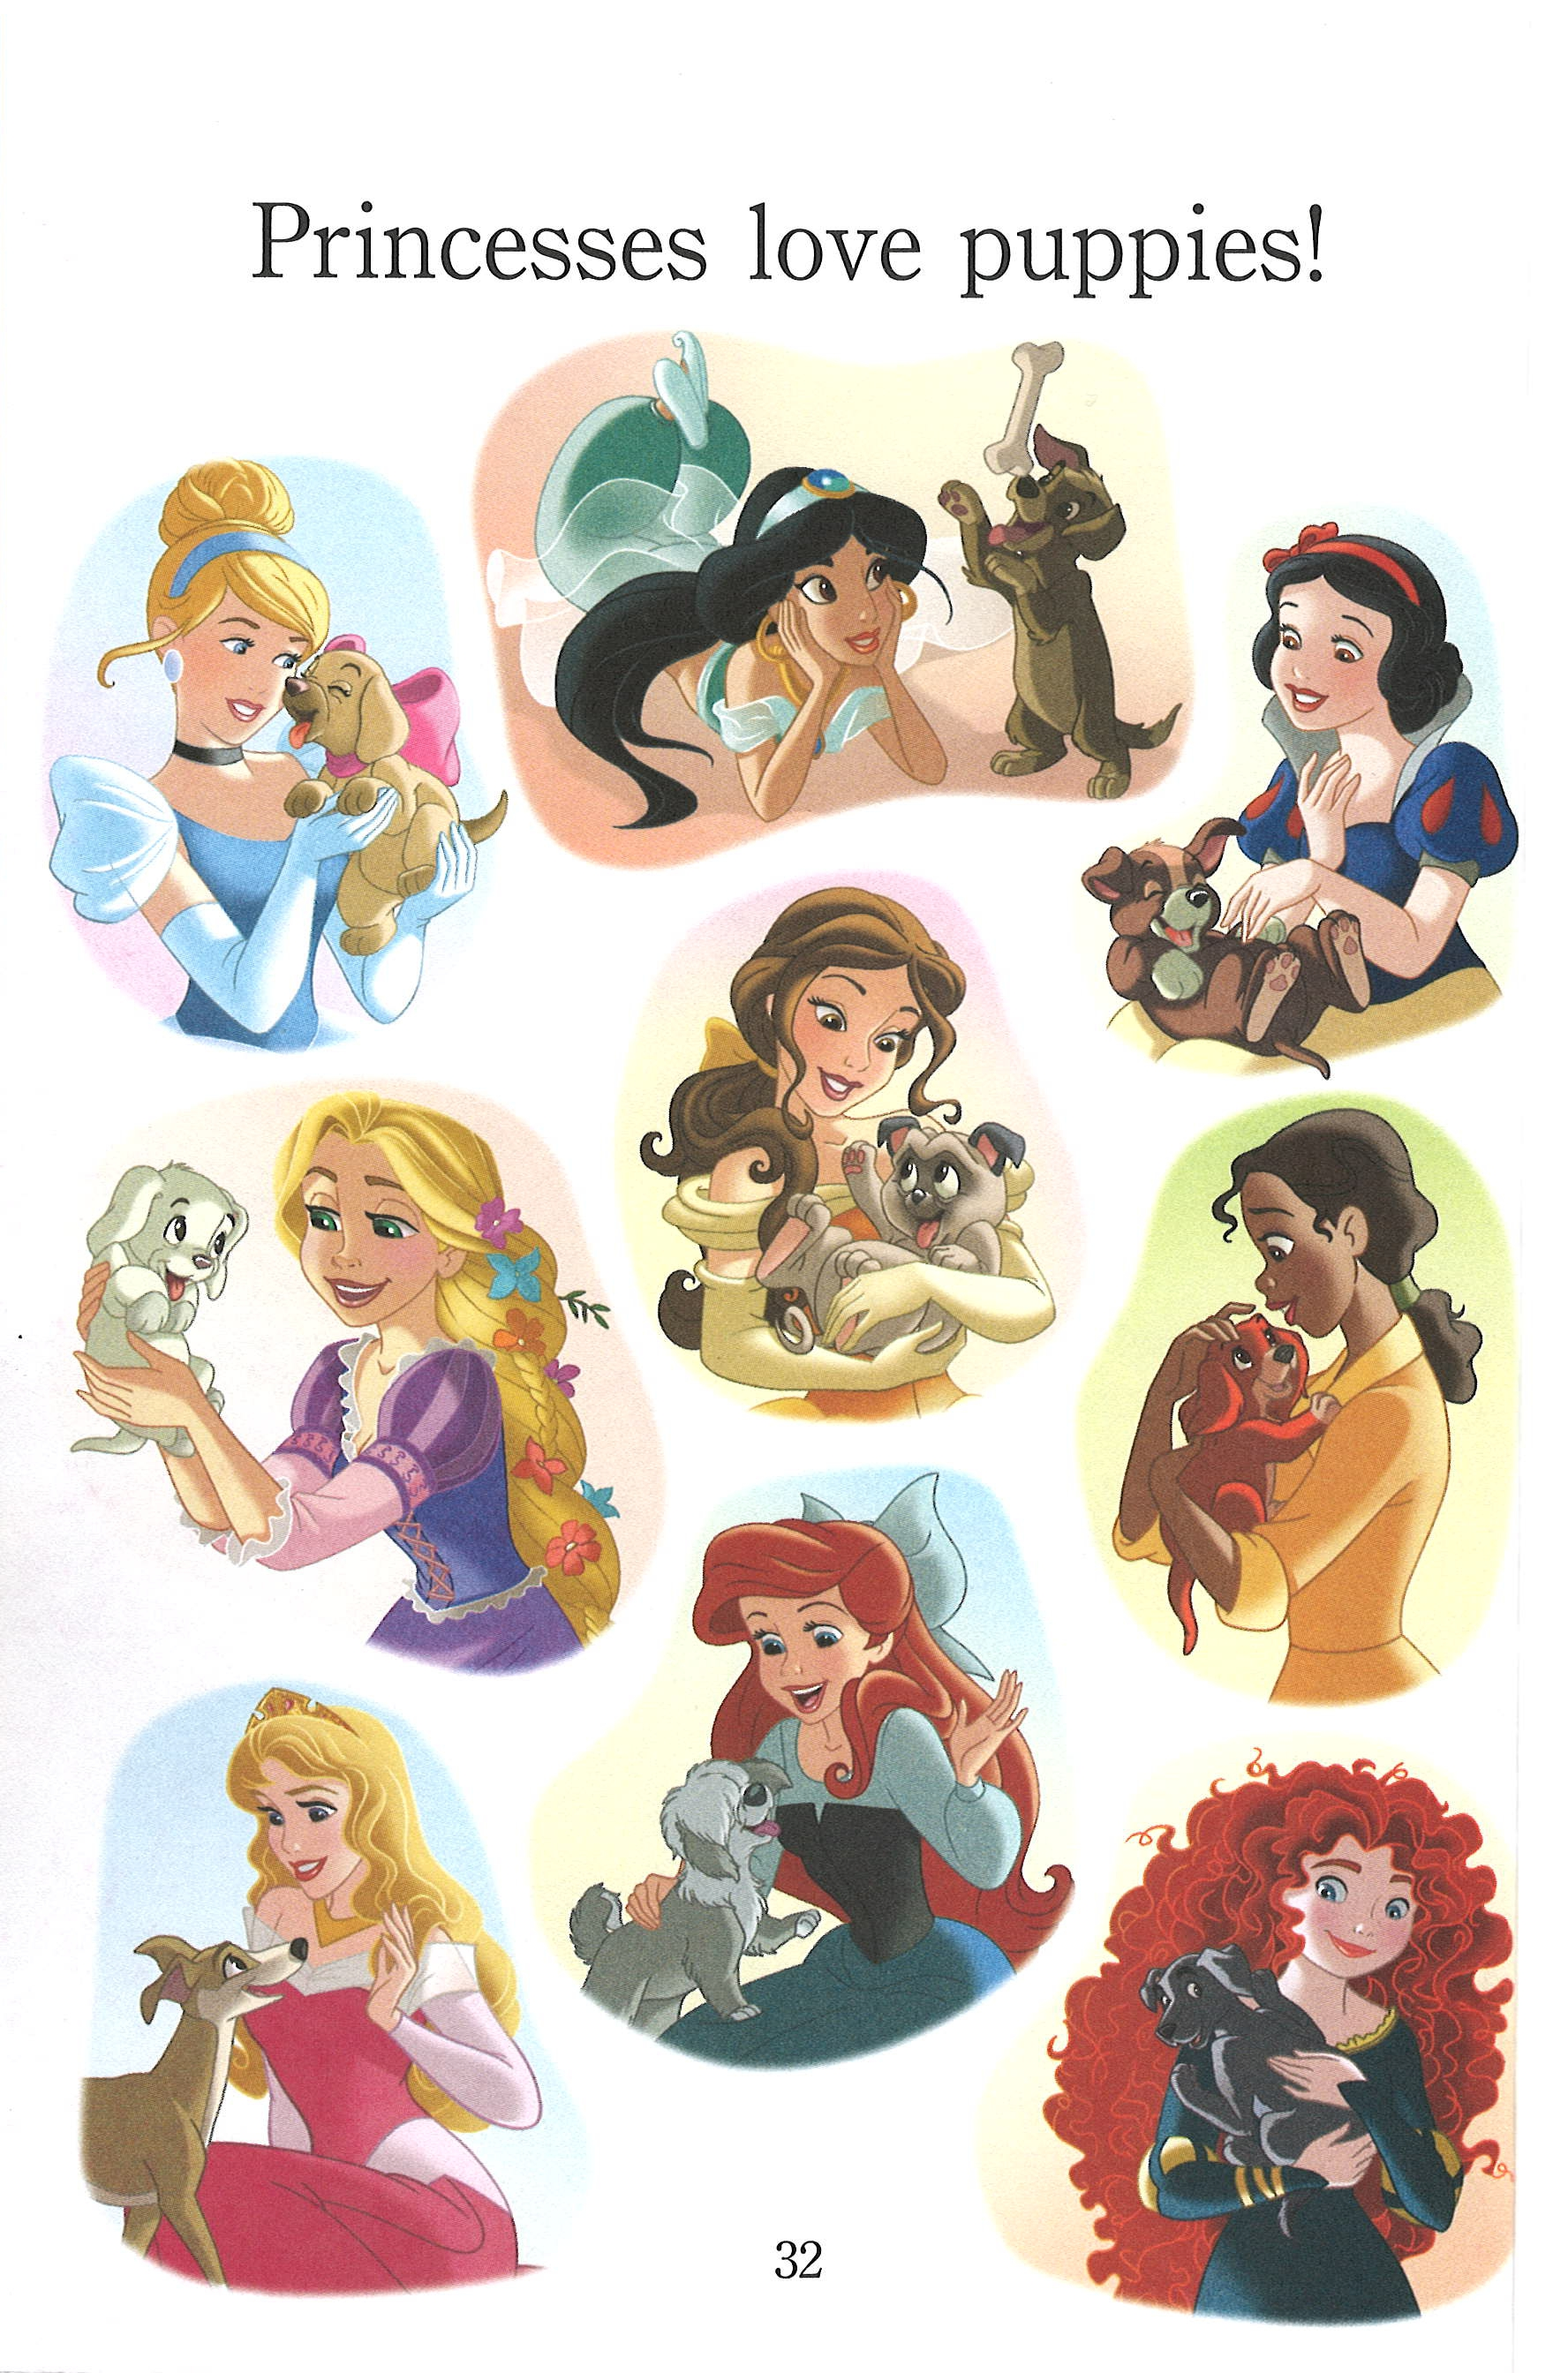 Princesses and Puppies